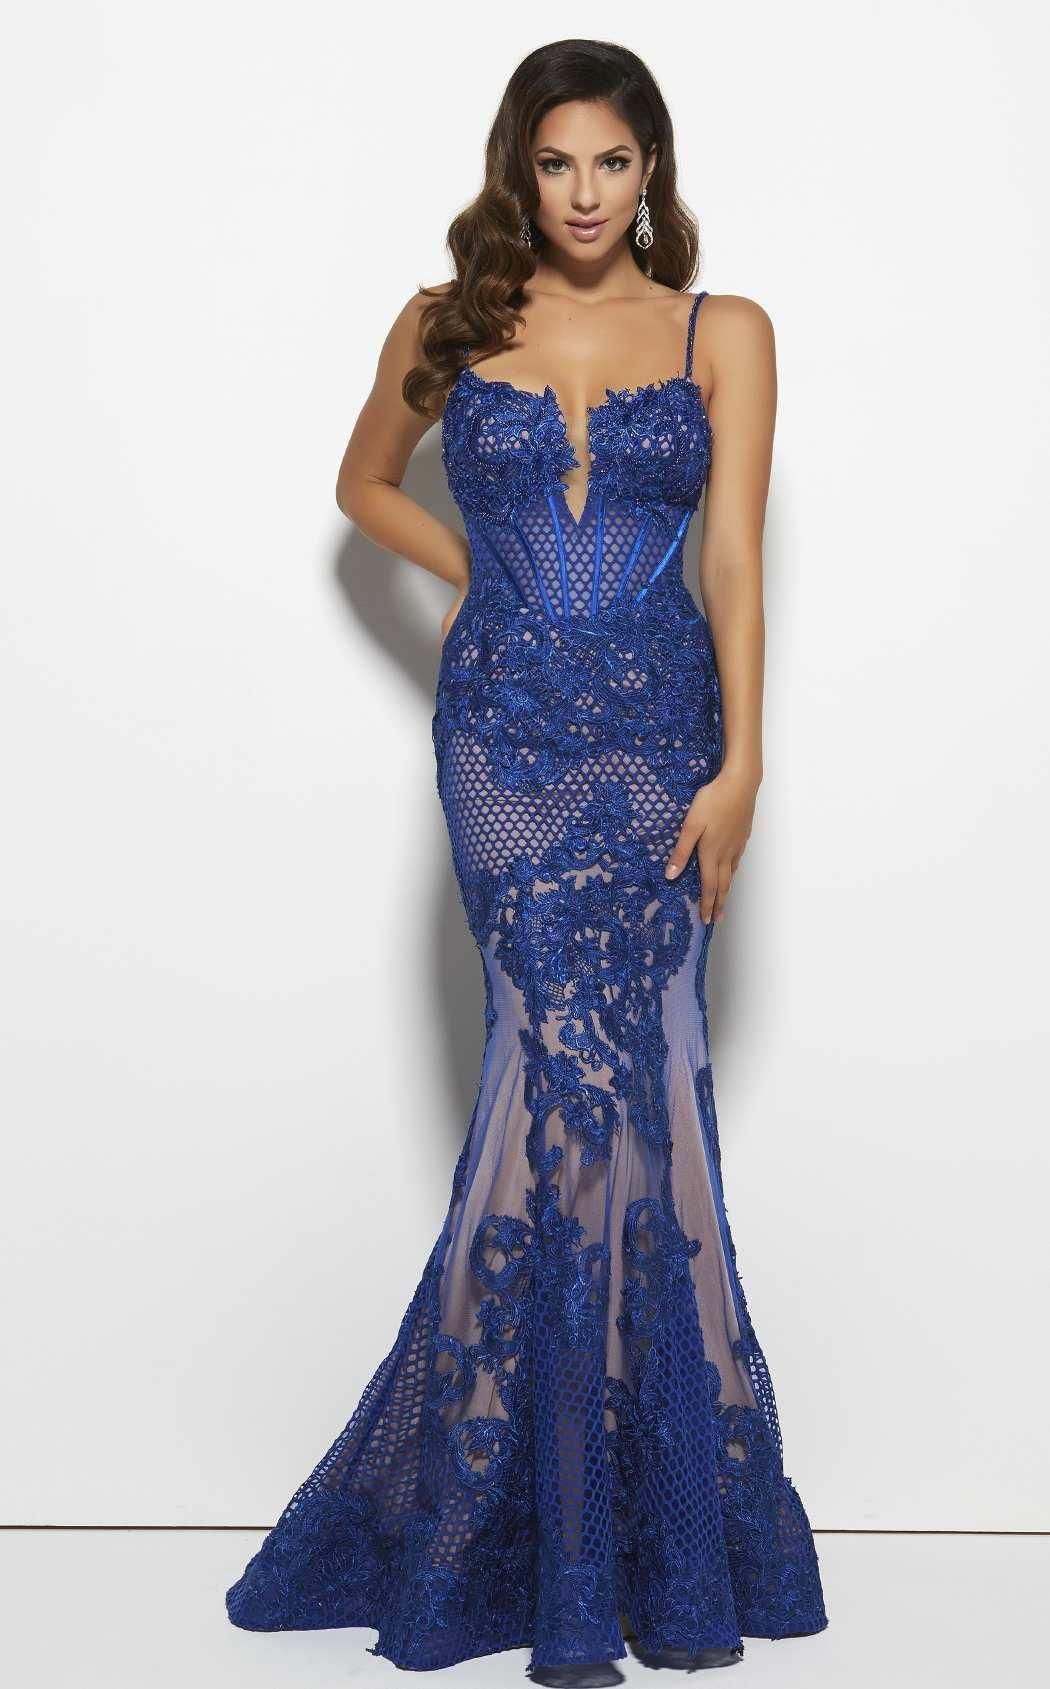 e276ee10d22 ... glamorous dress from the Black White Red collection. Make him stare in  this sumptuous evening gown by Mac Duggal 78999R. Thin spaghetti straps  lead to ...